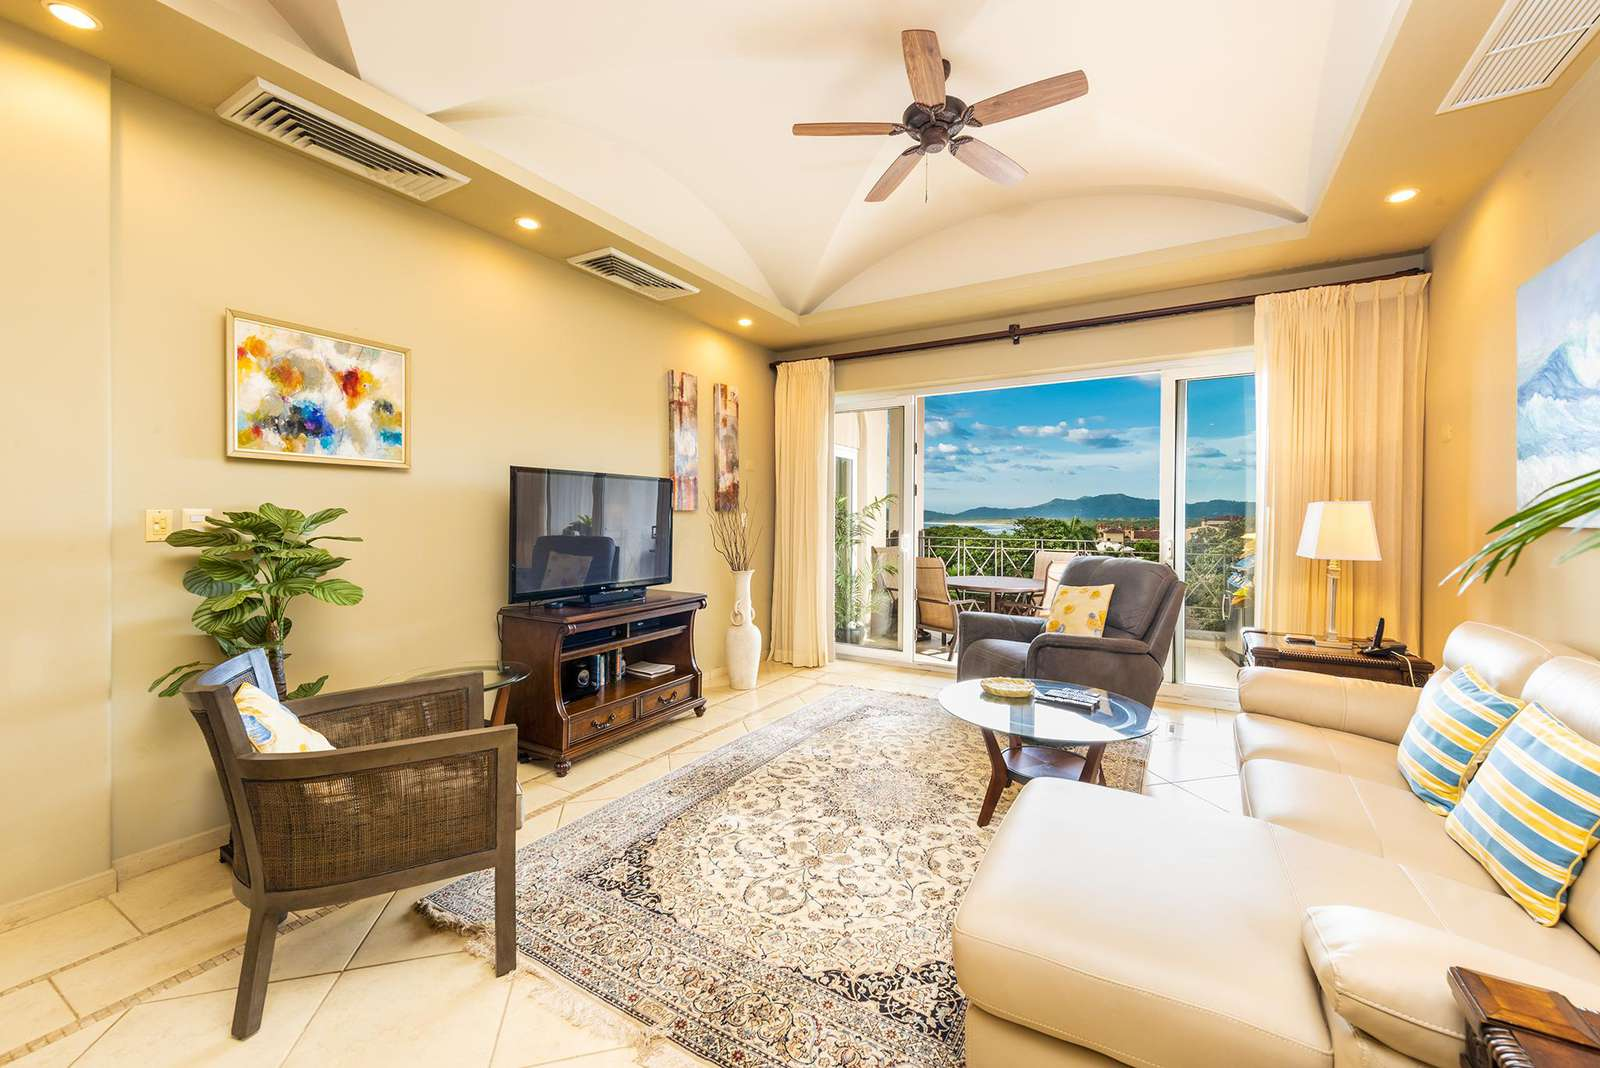 Spacious living area, access to private ocean view balcony